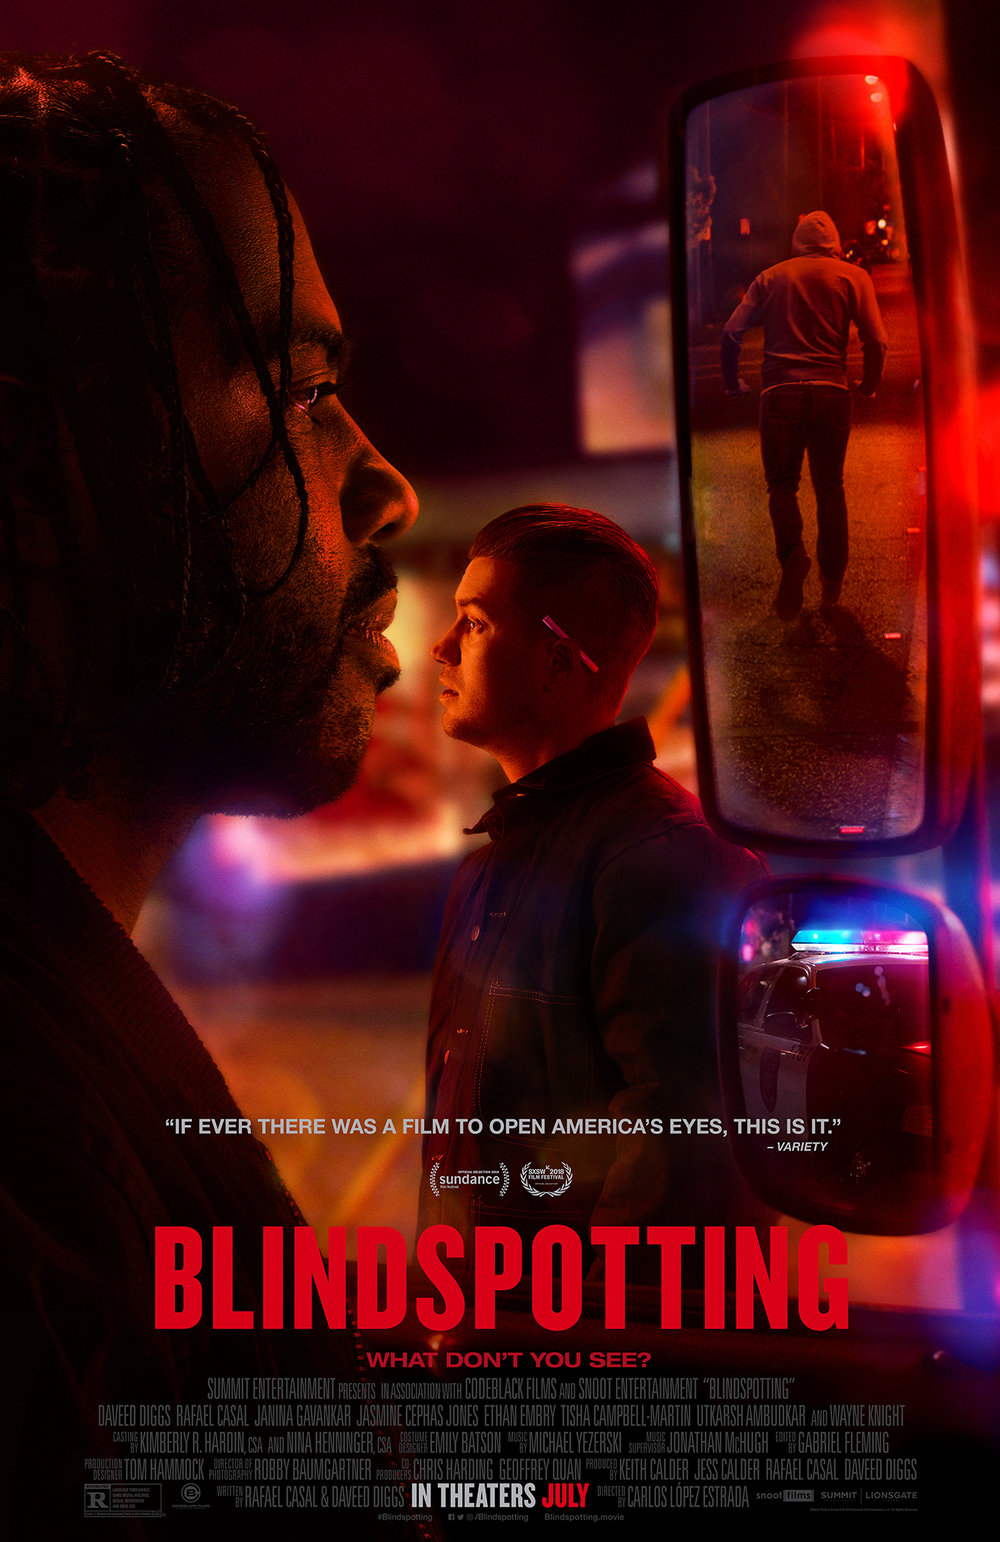 Blindspotting_1Sht_Payoff_Red_VF_Online_100dpi.jpg